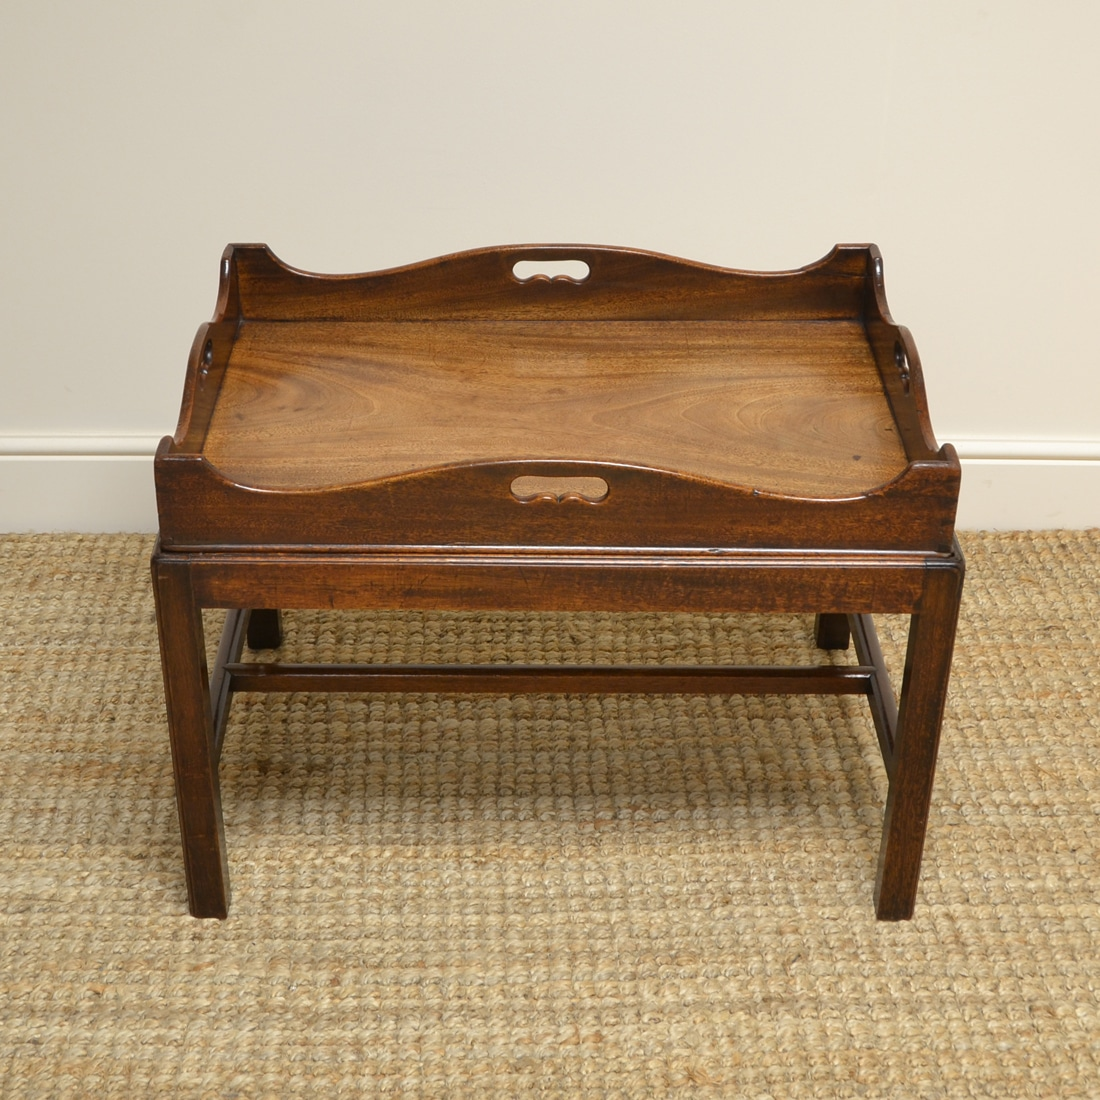 Phenomenal Georgian Mahogany Tray Top Antique Coffee Table Antiques World Gamerscity Chair Design For Home Gamerscityorg